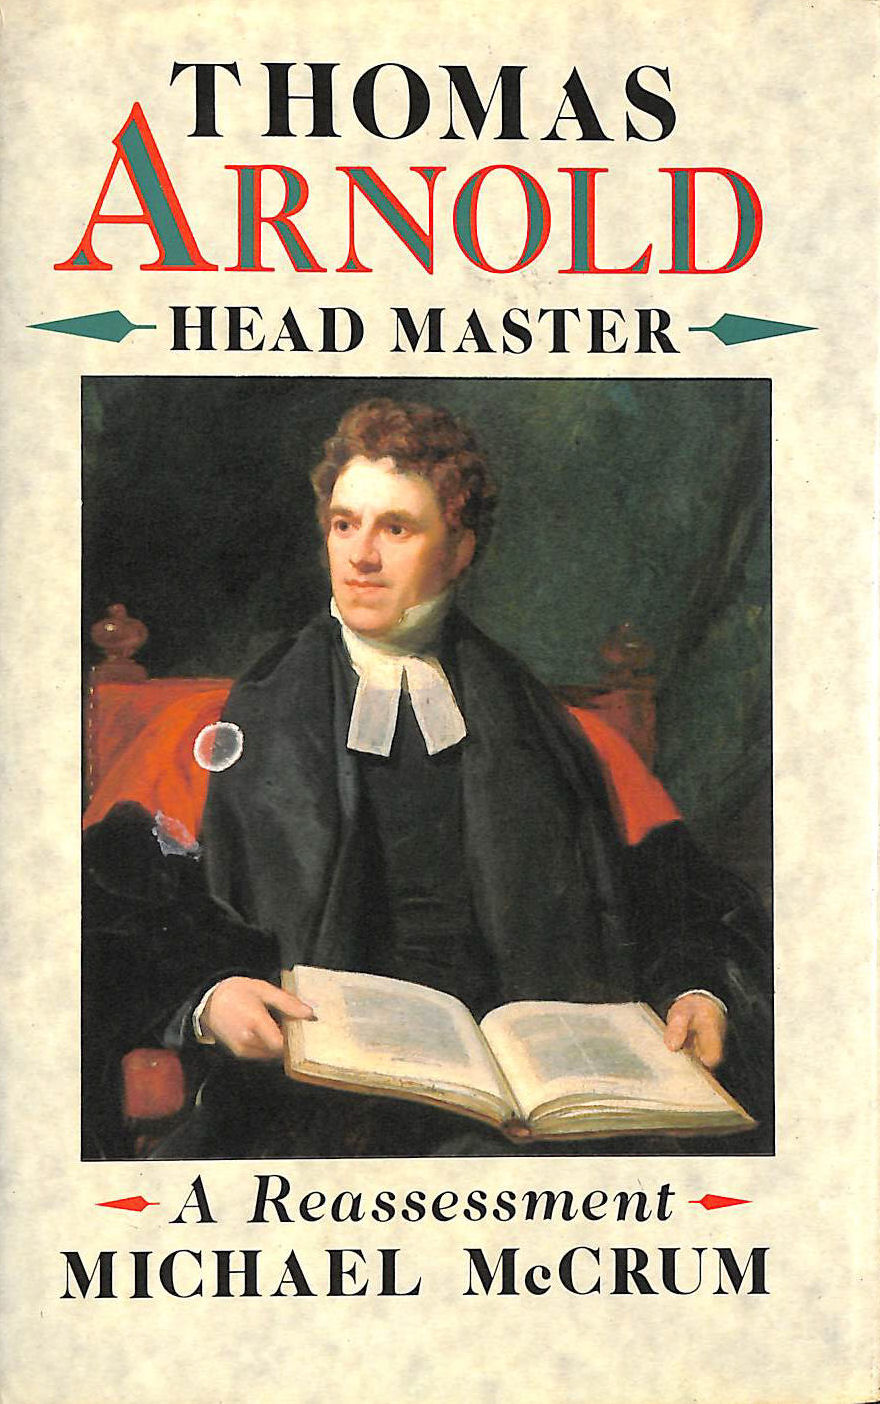 Image for Thomas Arnold, Head Master: A Reassessment